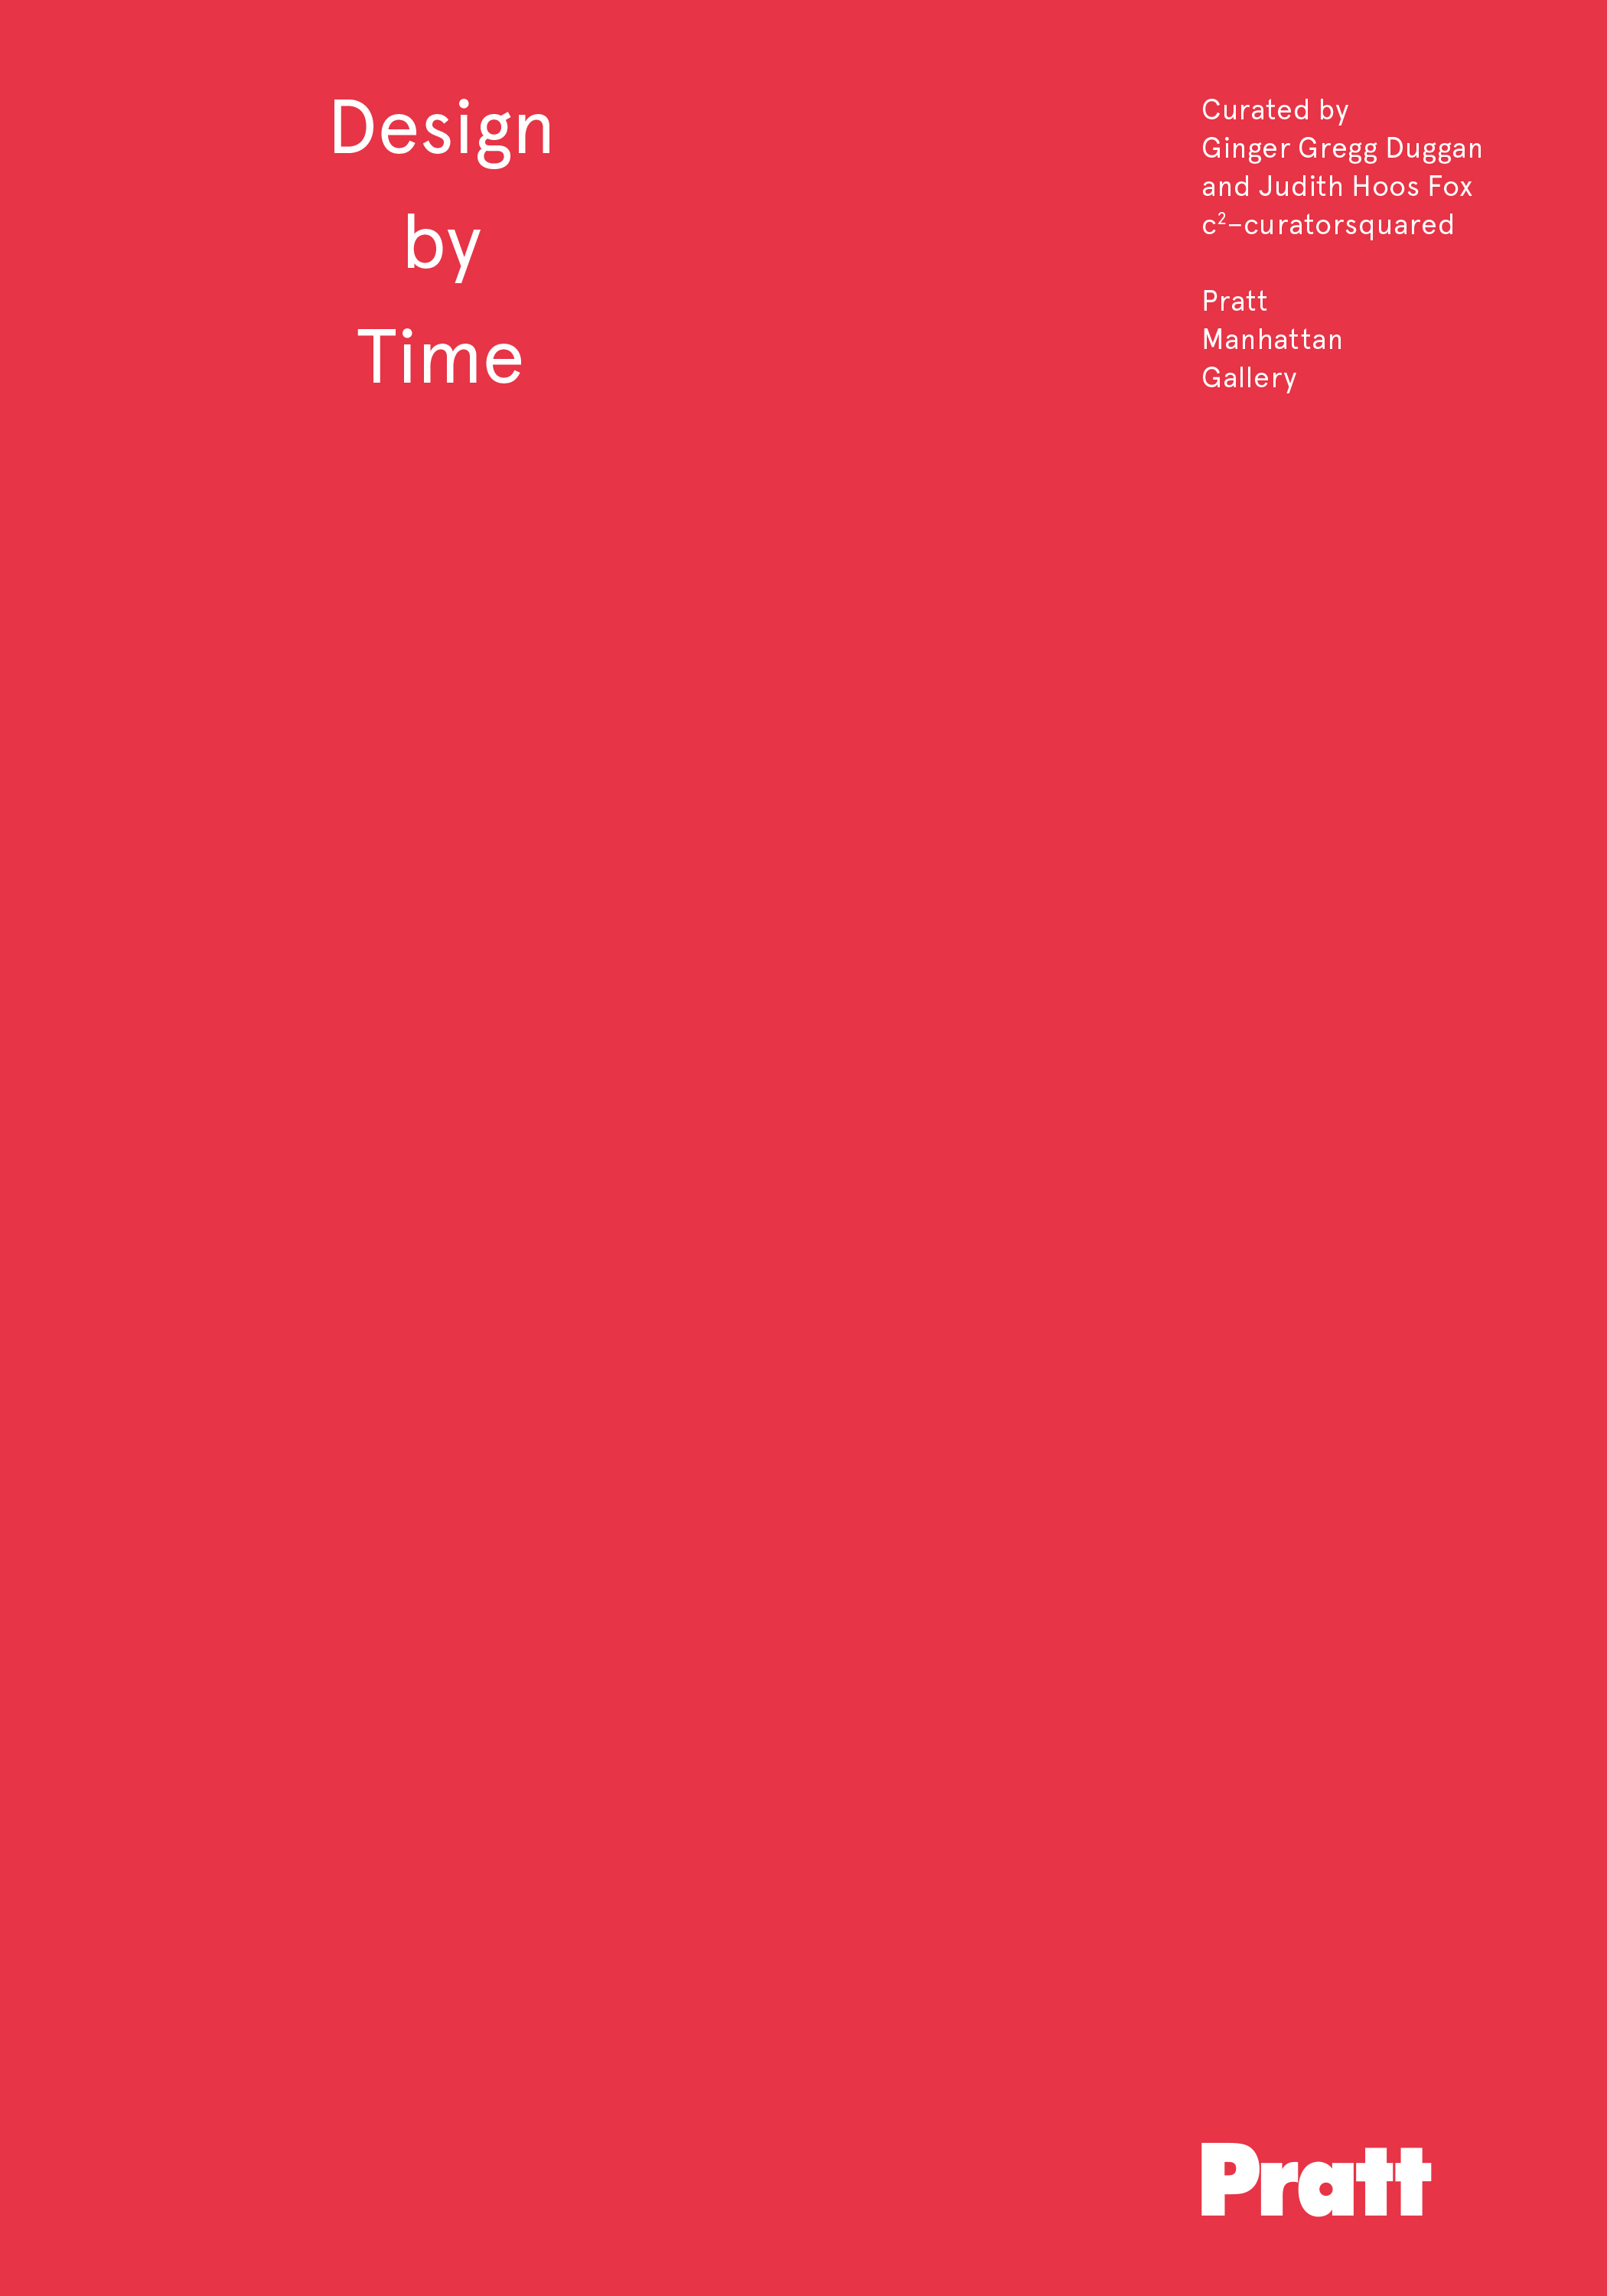 Design by Time catalog